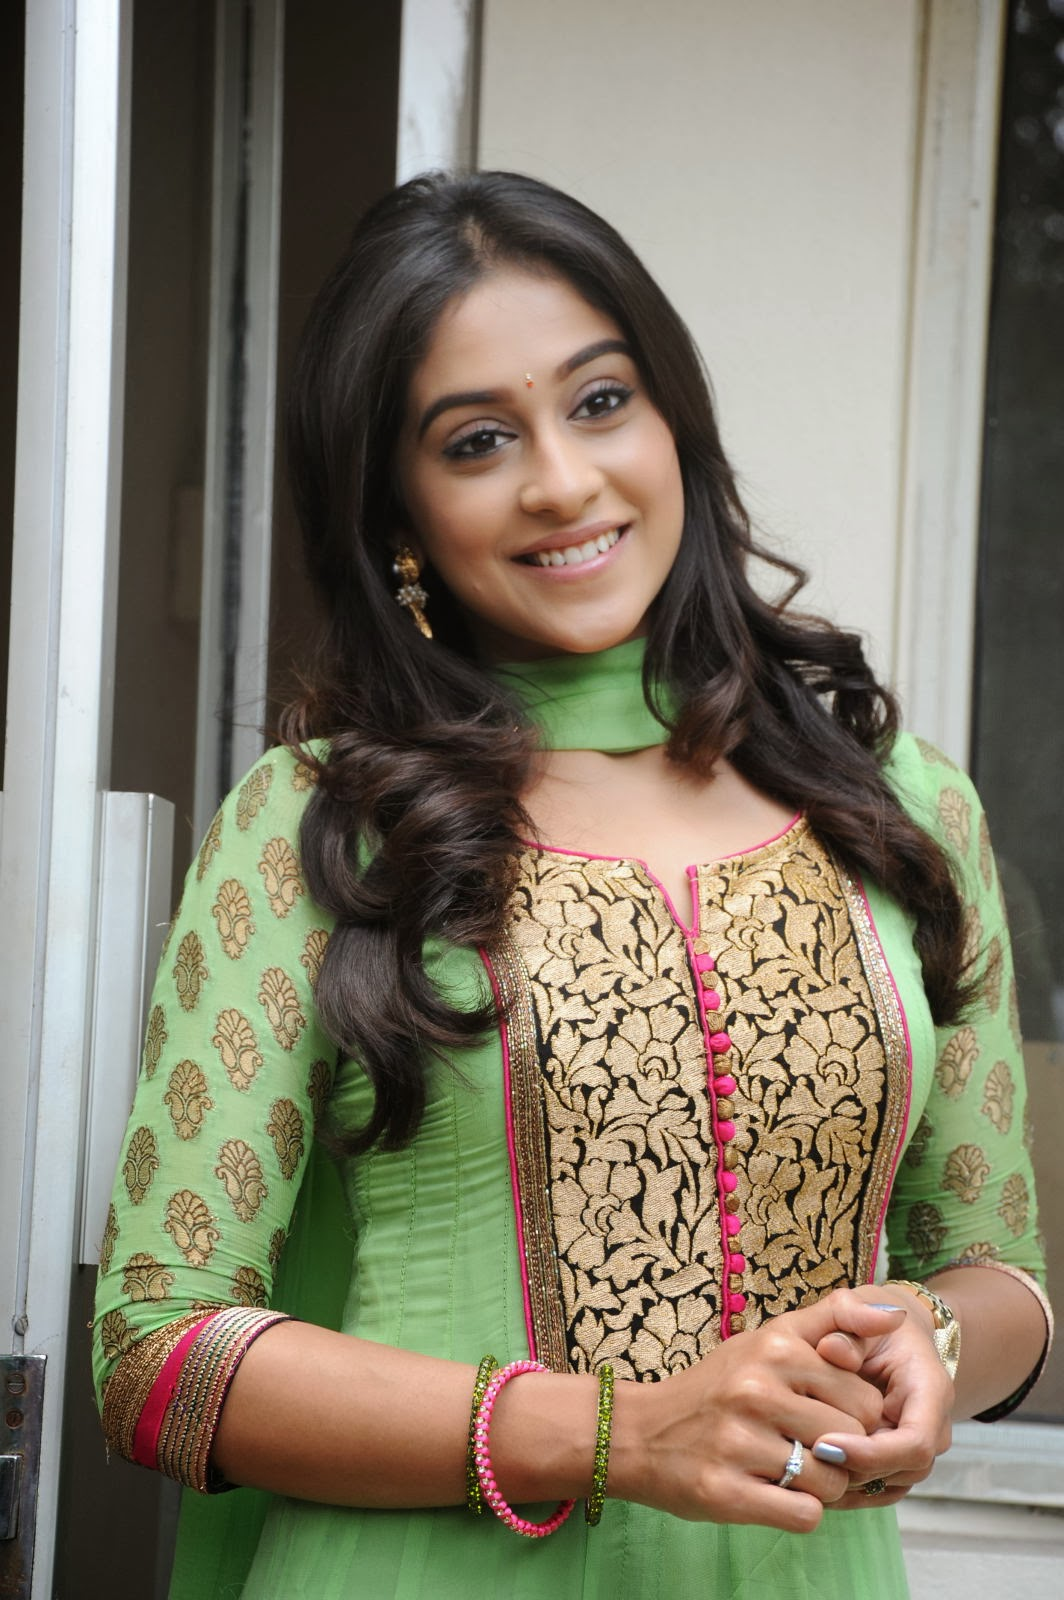 Gorgeous Regina cassandra photos in green salwar kameez